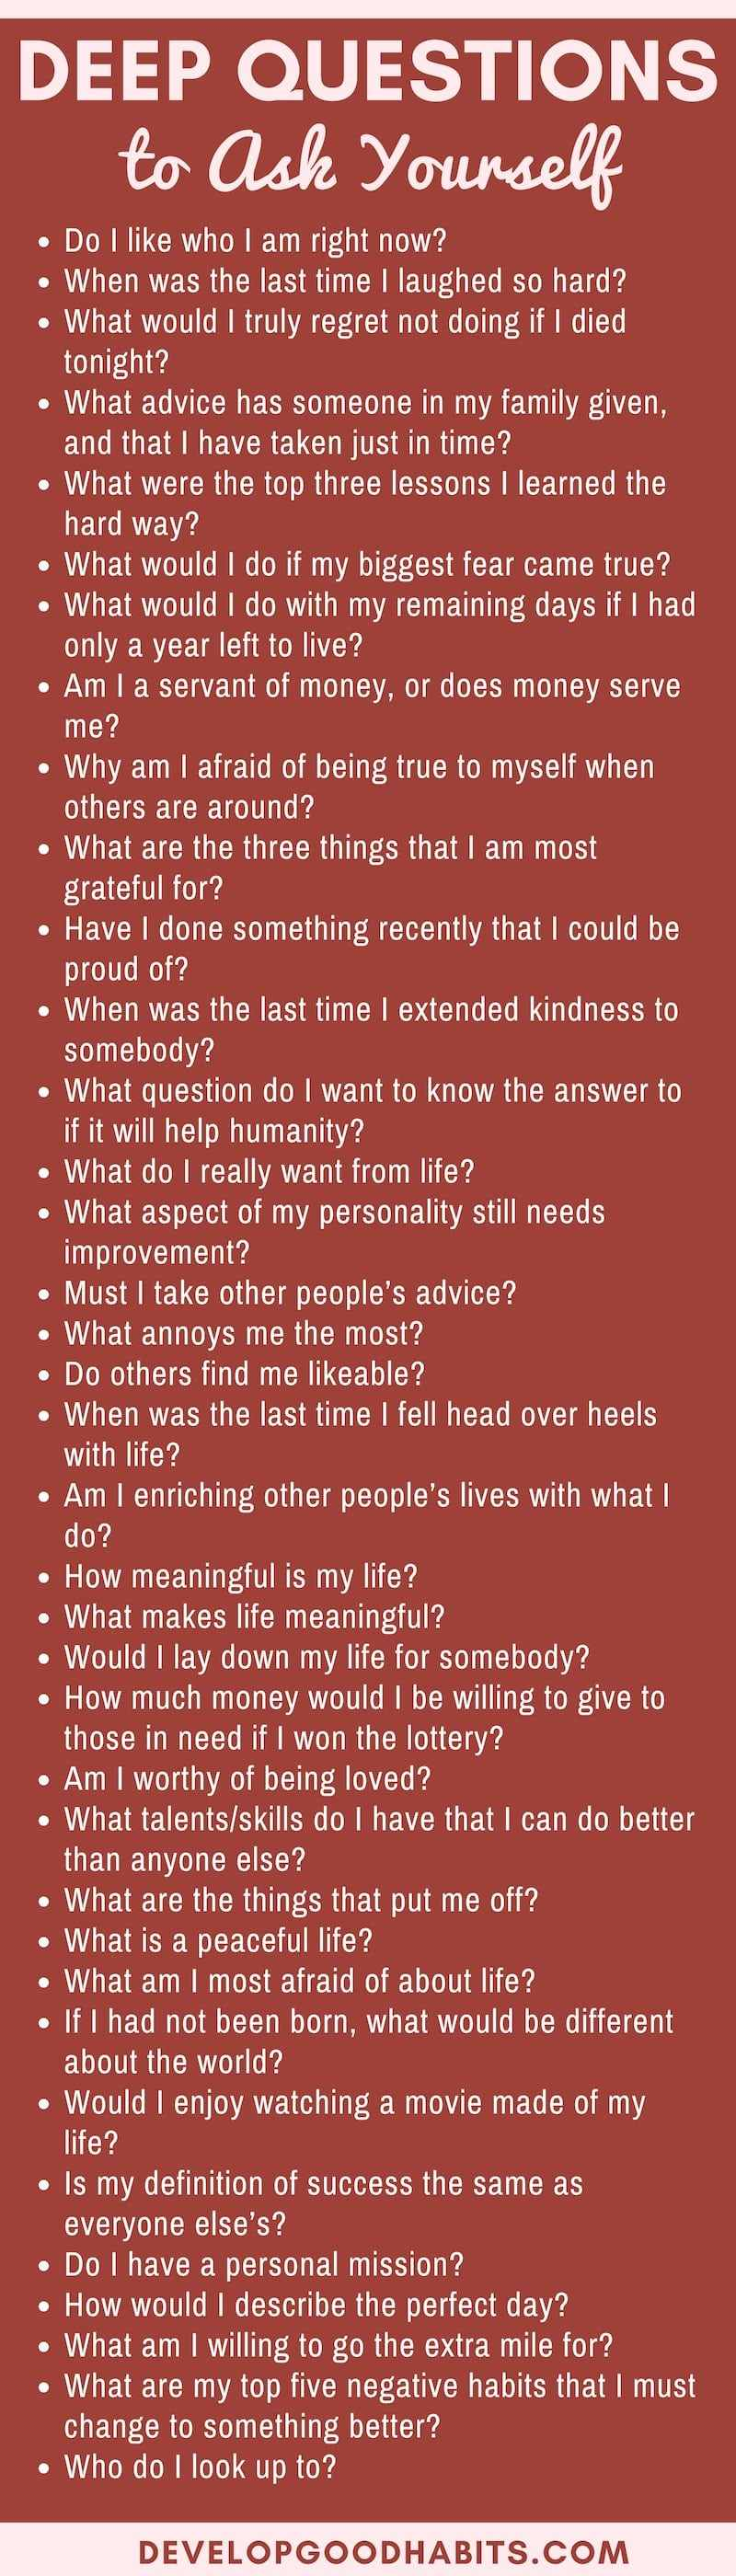 Very interesting questions to ask